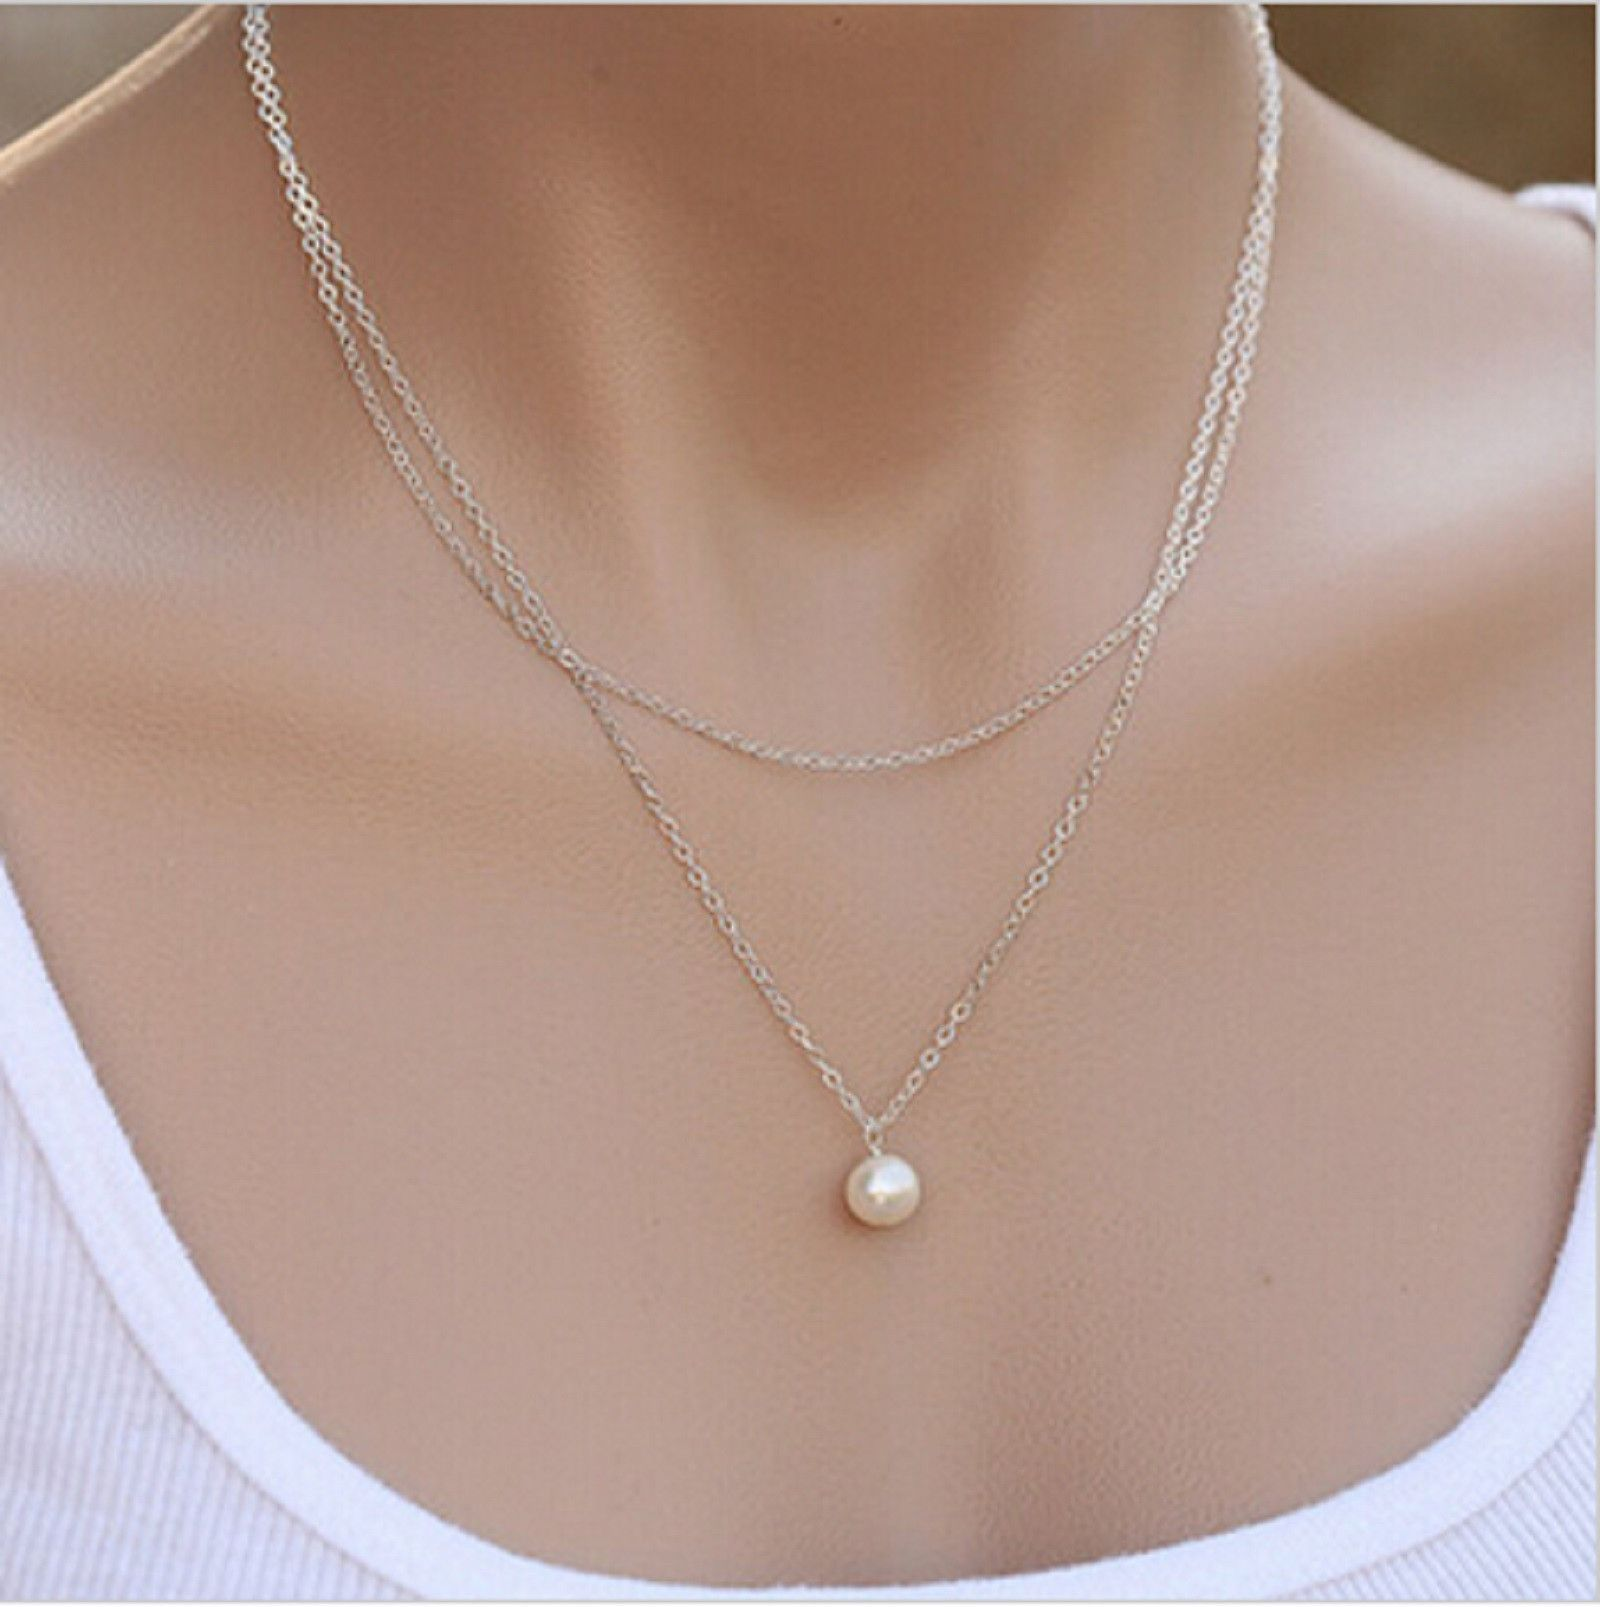 products bl victoria pearl grey gr necklace neck black single